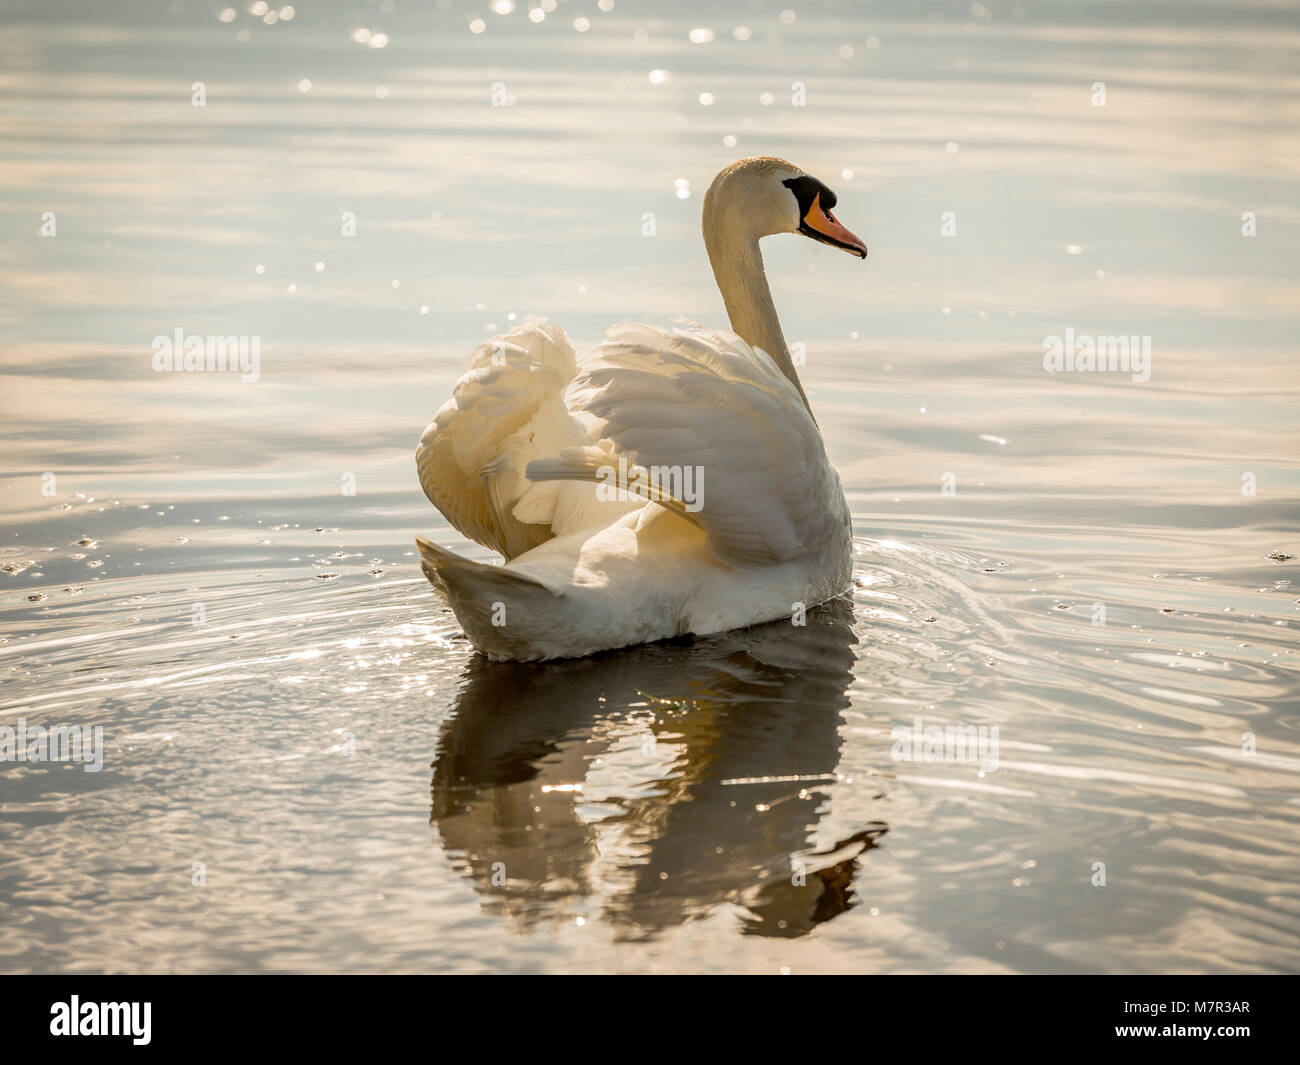 Beautiful Mute Swan (Cygnus olor) bathed in golden sunlight , fanning its wings against the shimmering water. - Stock Image